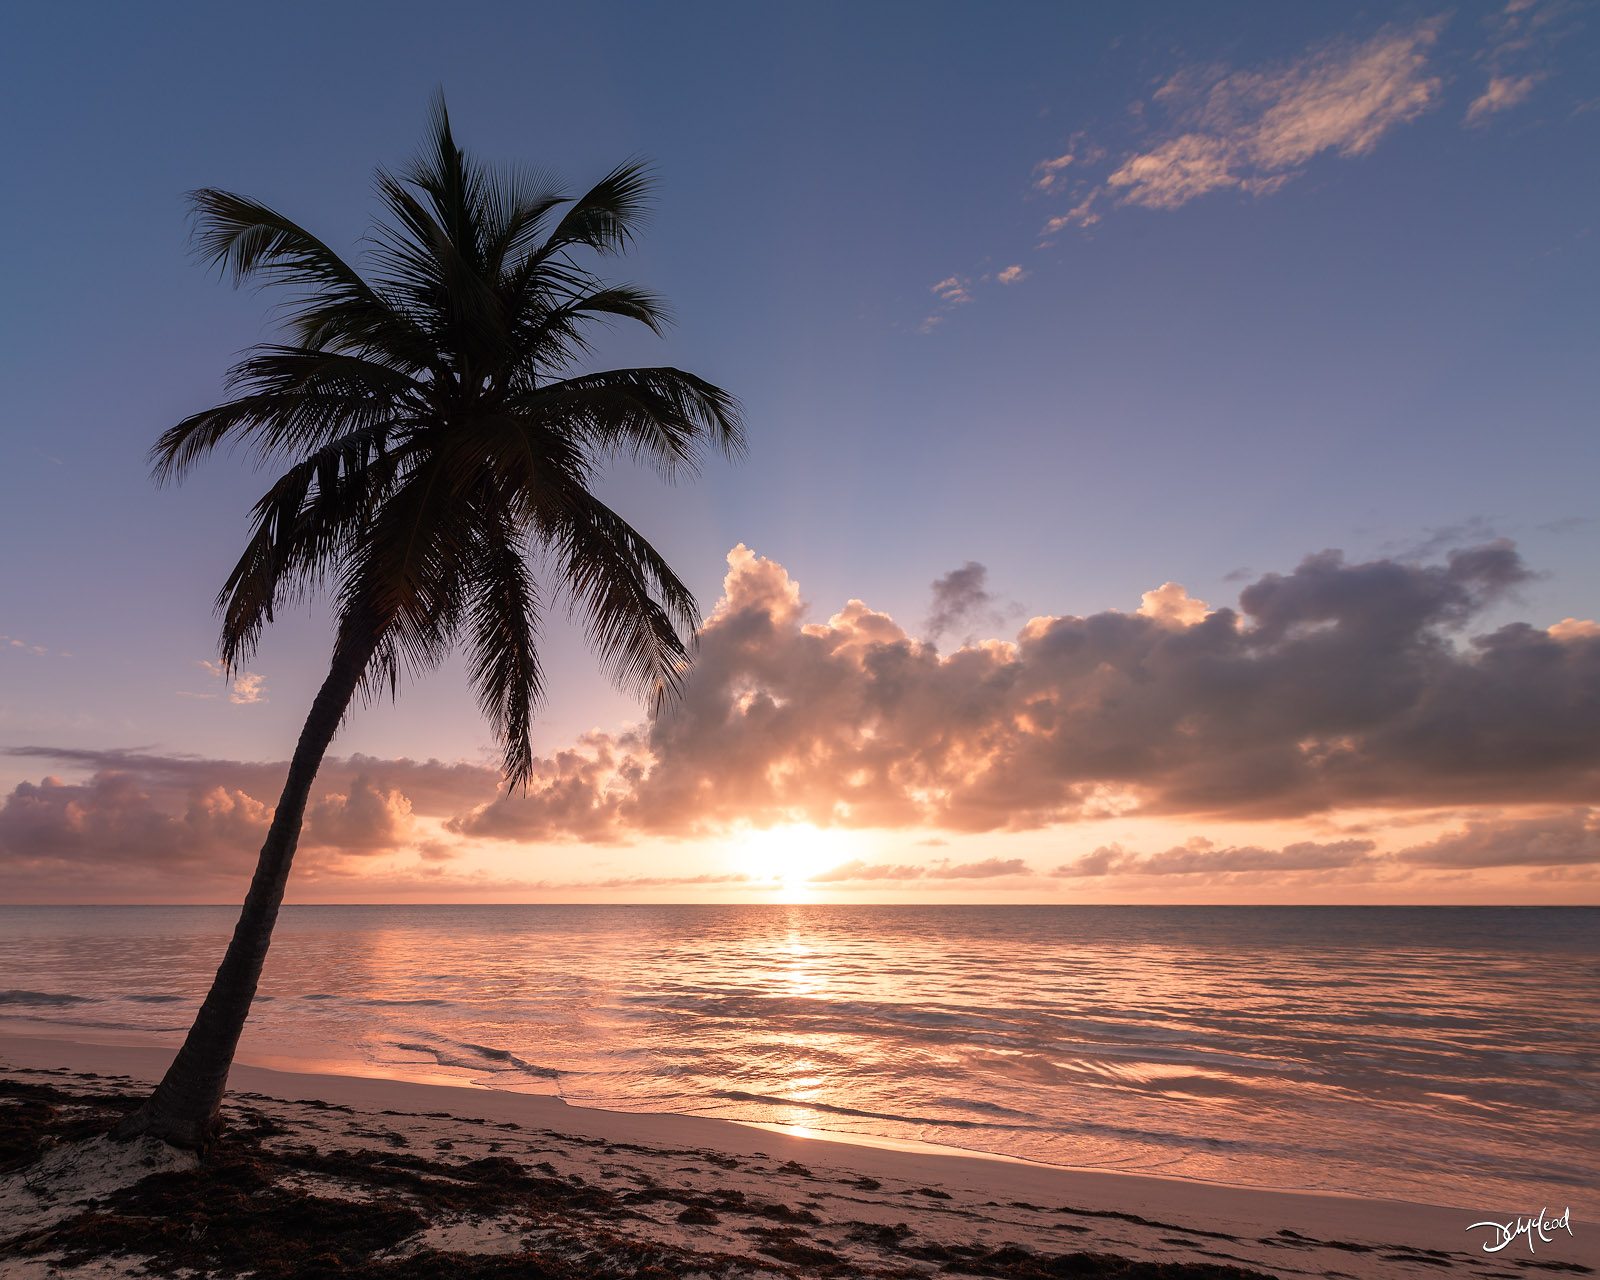 A single palm tree on the beach at sunrise in Punta Cana, Dominican Republic.